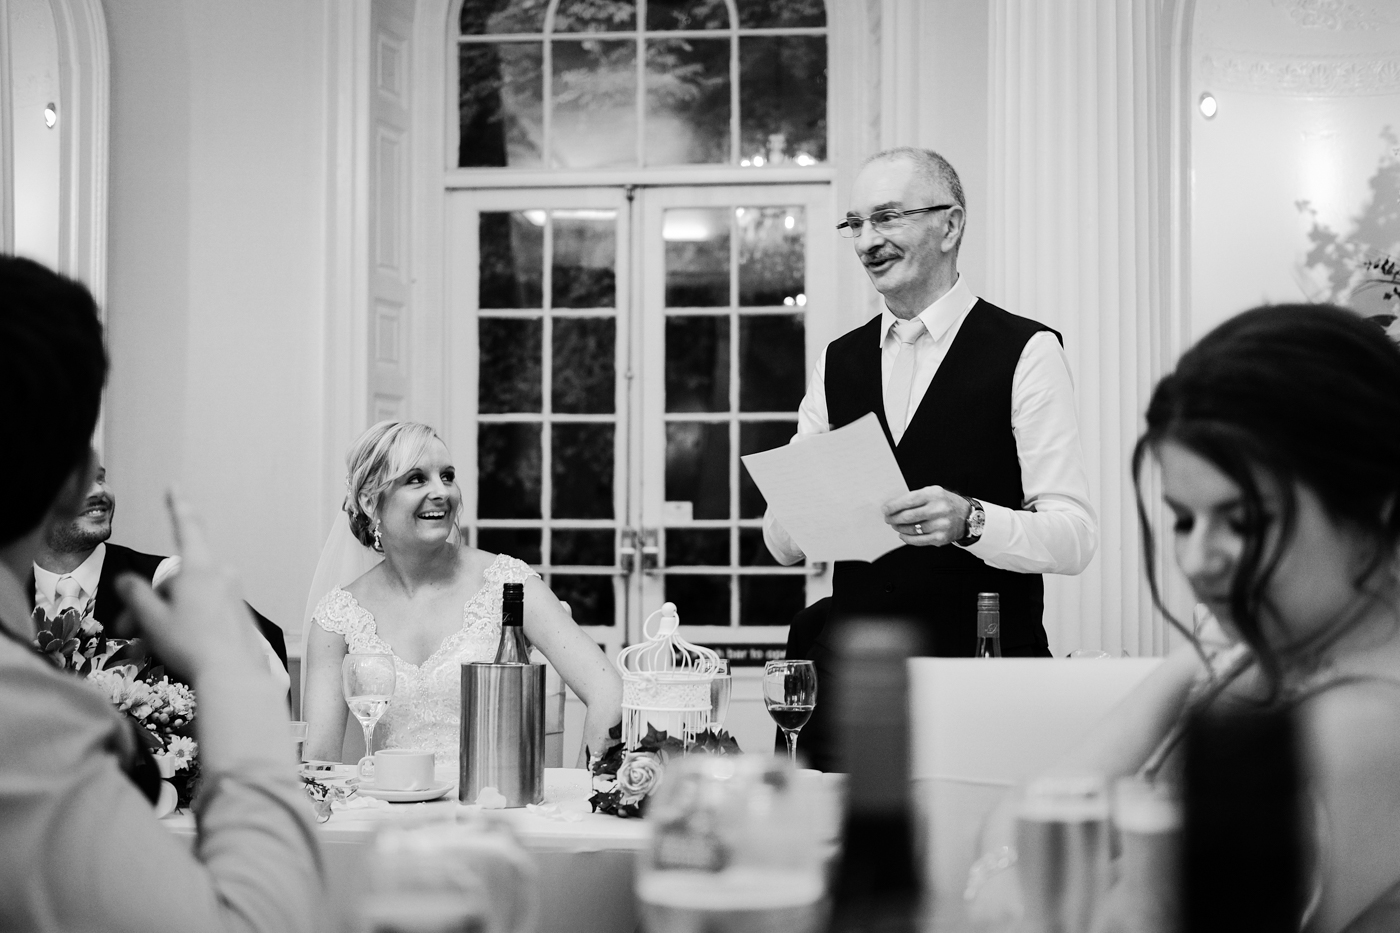 Bride laughing at her dad's speech during the wedding, taken in black and white. Photographed at Colwick Hall, Nottingham